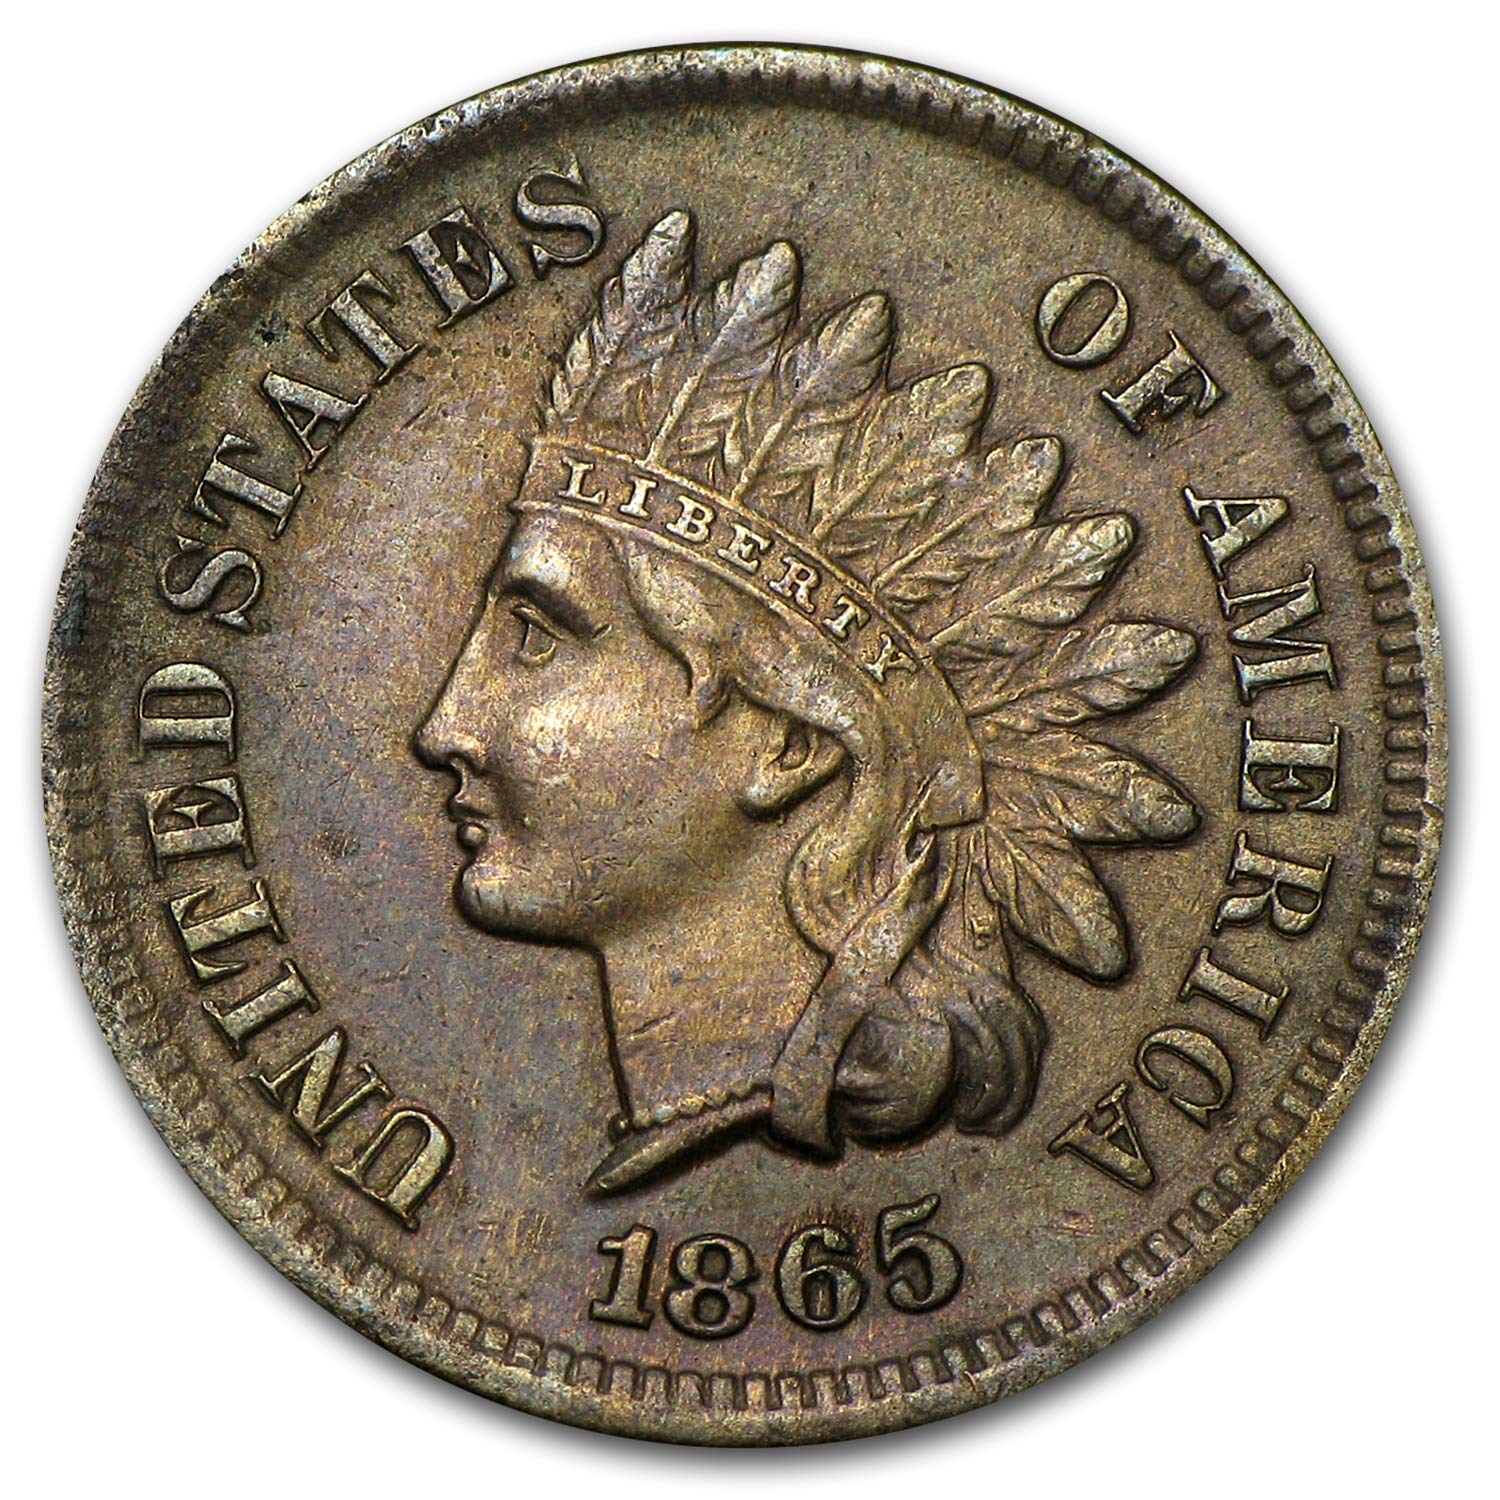 cc144ff41d1f7 1865 Indian Head Cent AU Cent About Uncirculated at Amazon's ...